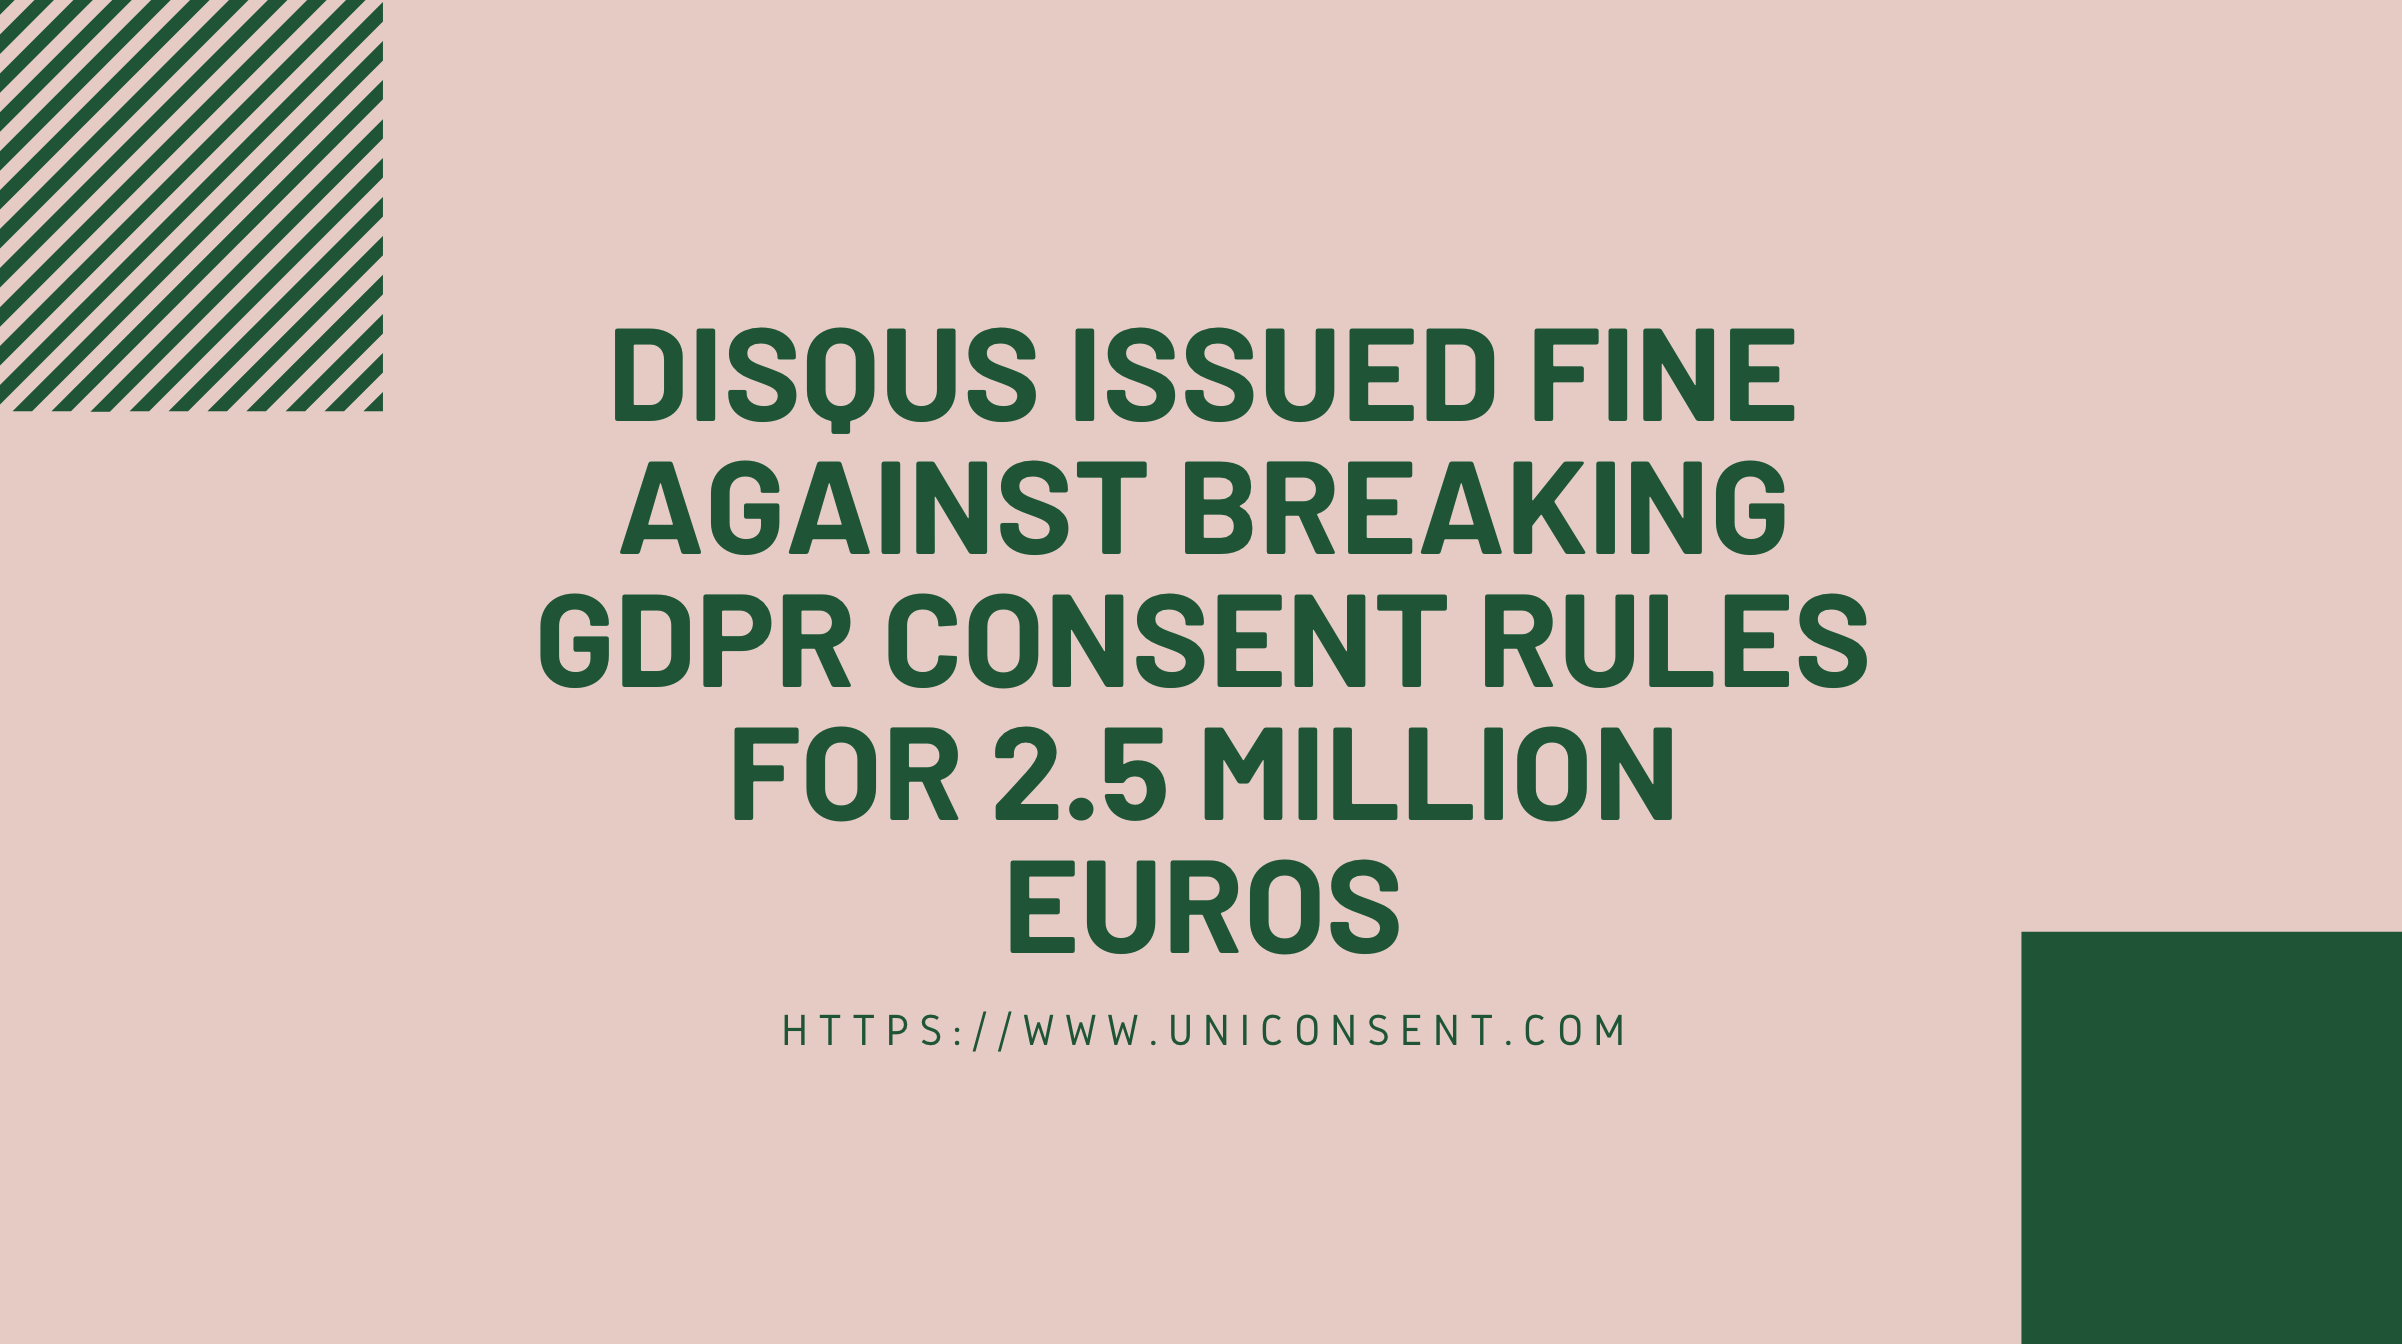 Disqus issued fine against breaking GDPR consent rules for 2.5 million euros